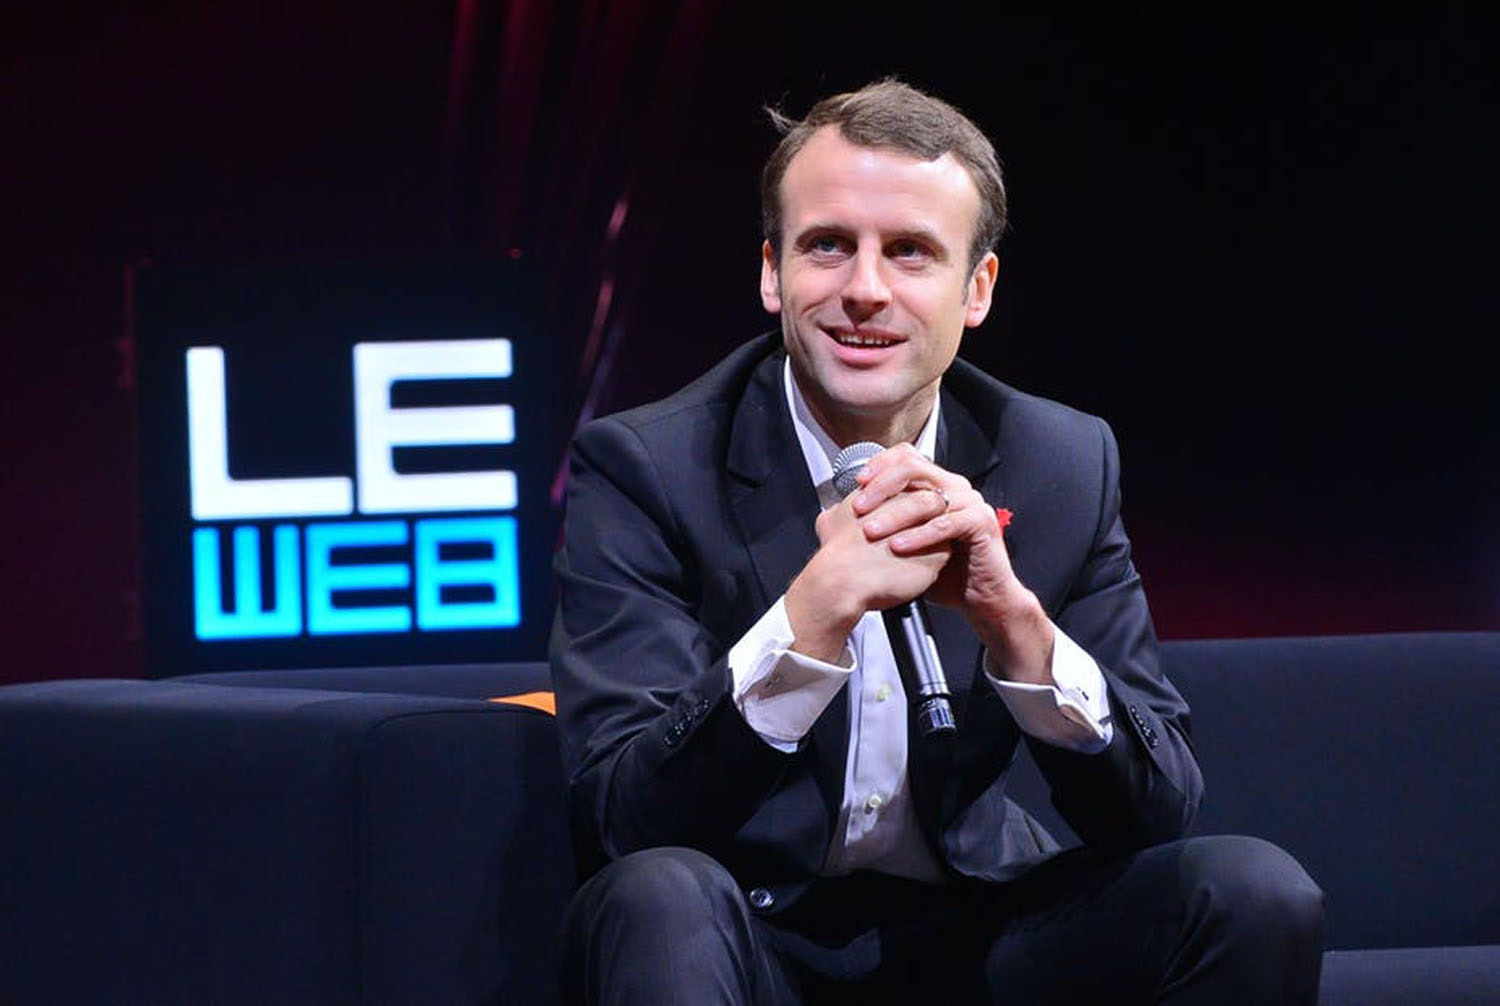 Paris calling: Emmanuel Macron calls on the world to build trust and stability on the Internet